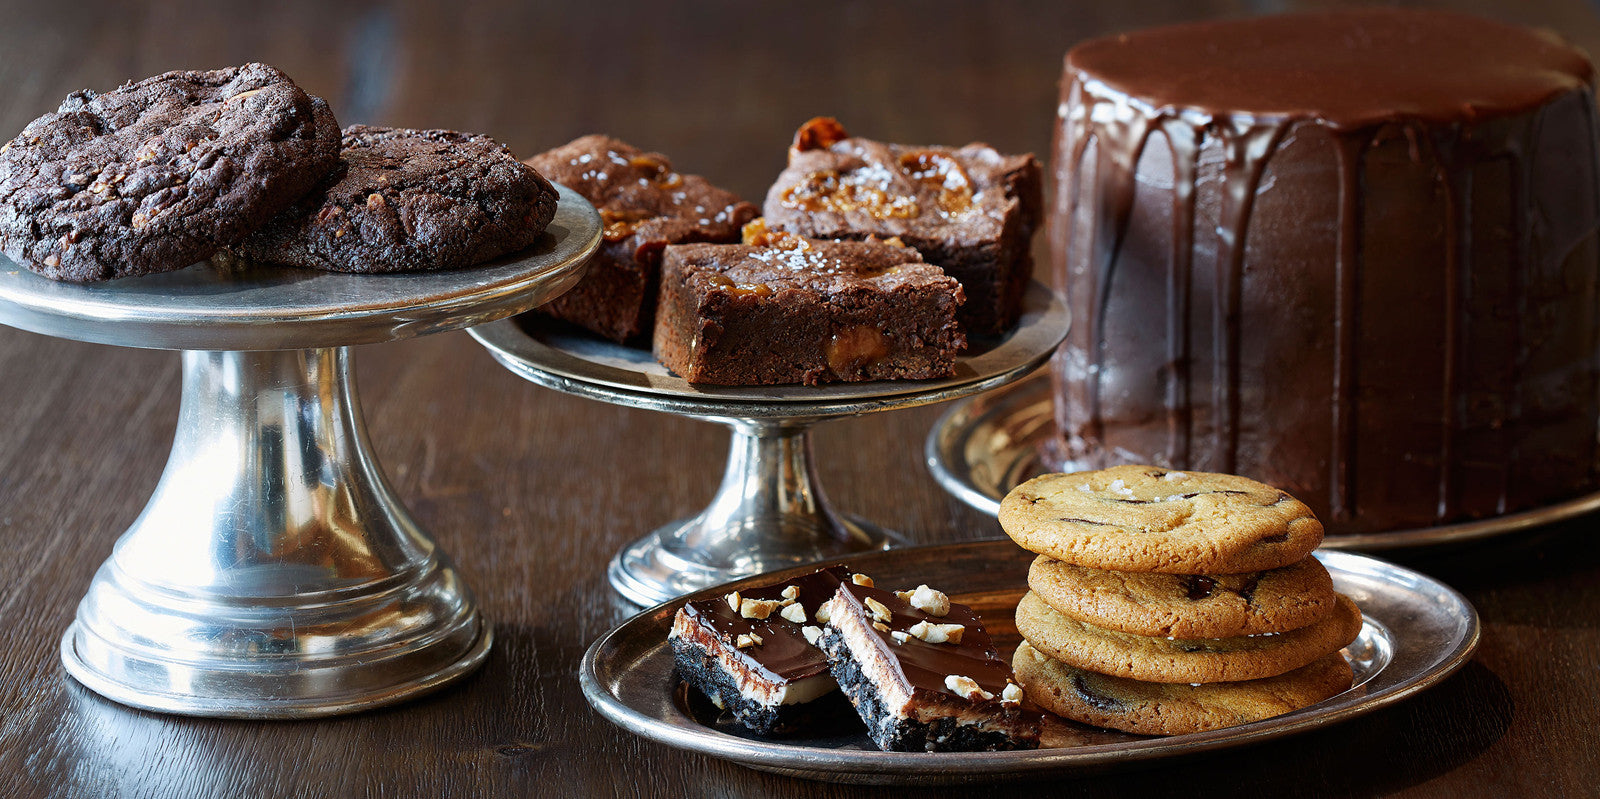 Cocoa + Co. | Gourmet Chocolate Café and Coffee Bar | Old Town Chicago